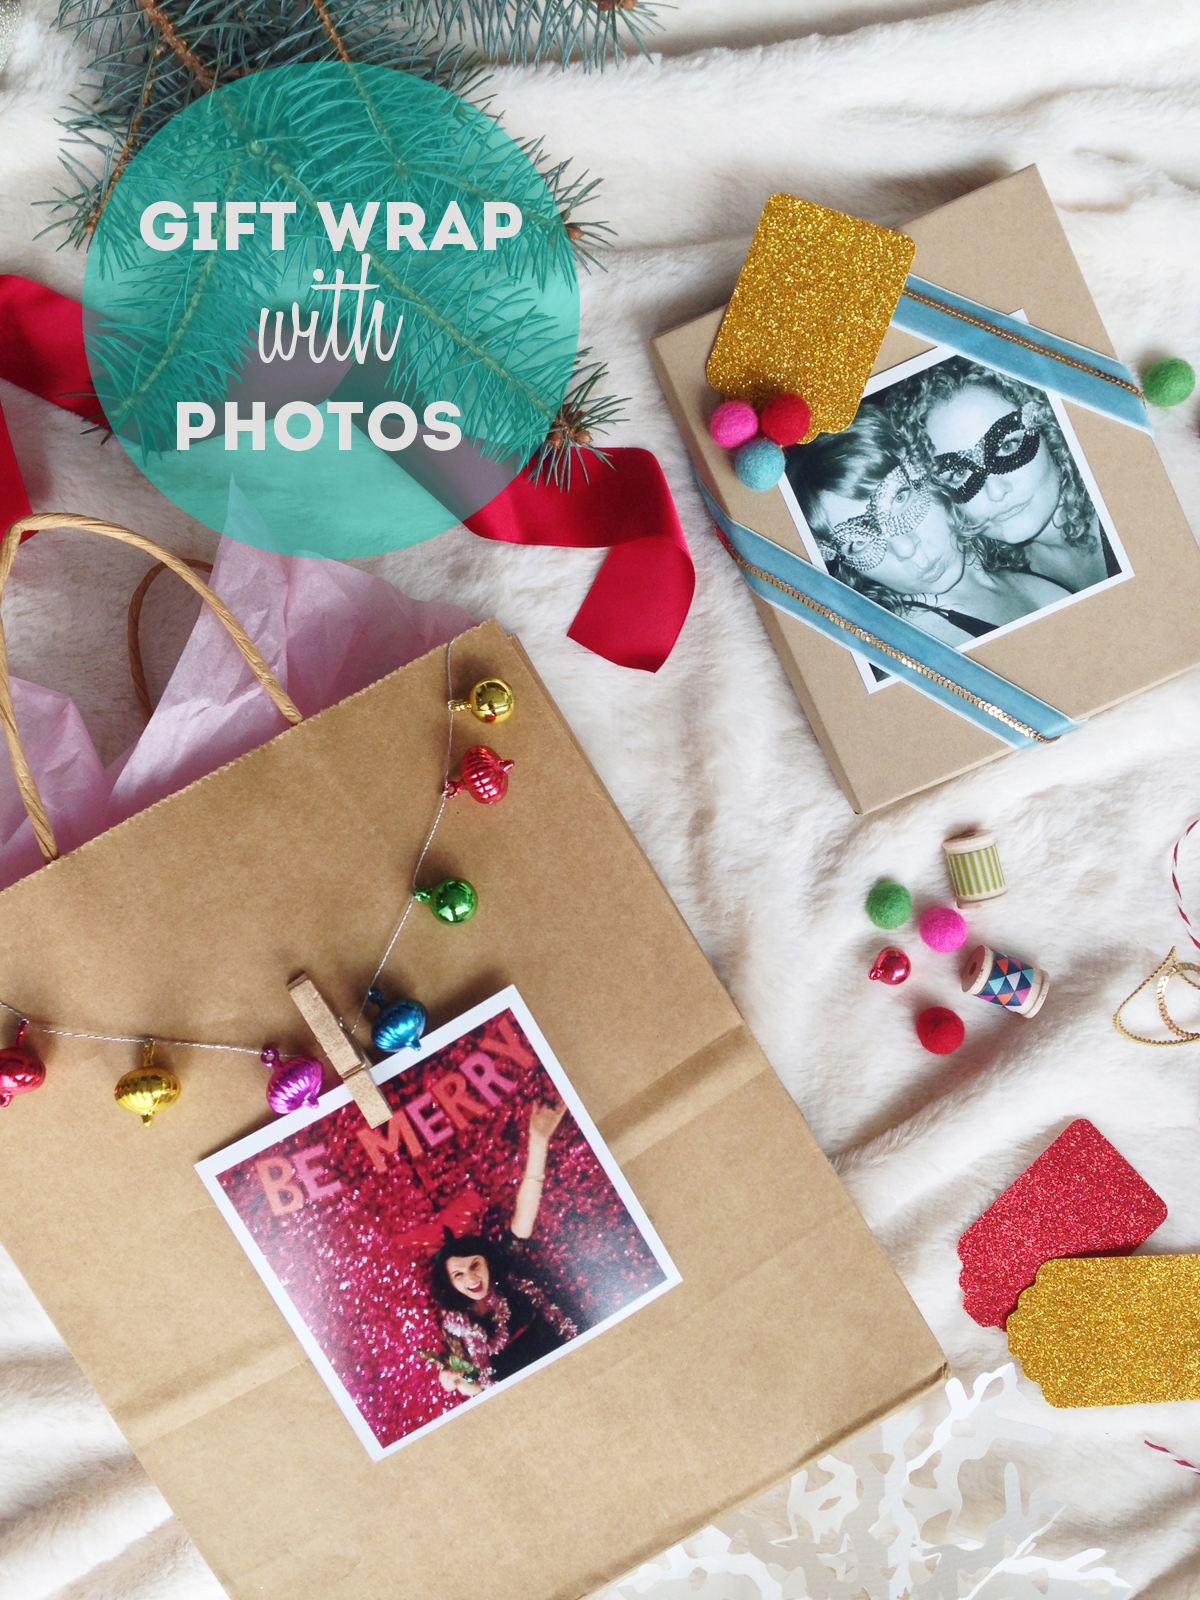 Gift wrap ideas using photos / The Sweet Escape